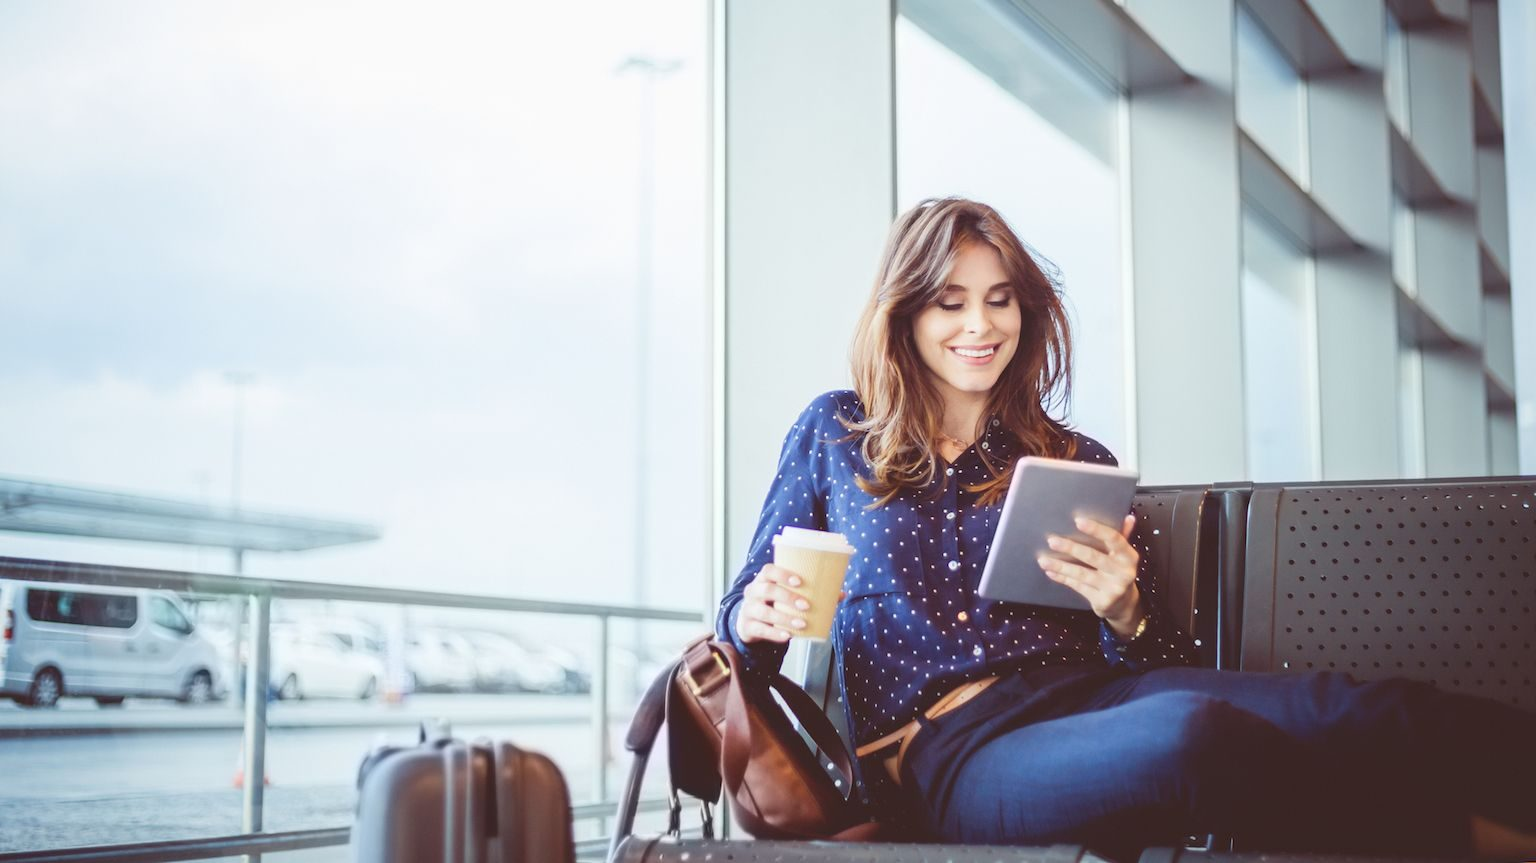 Woman looking at tablet and holding a coffee while waiting in airport.